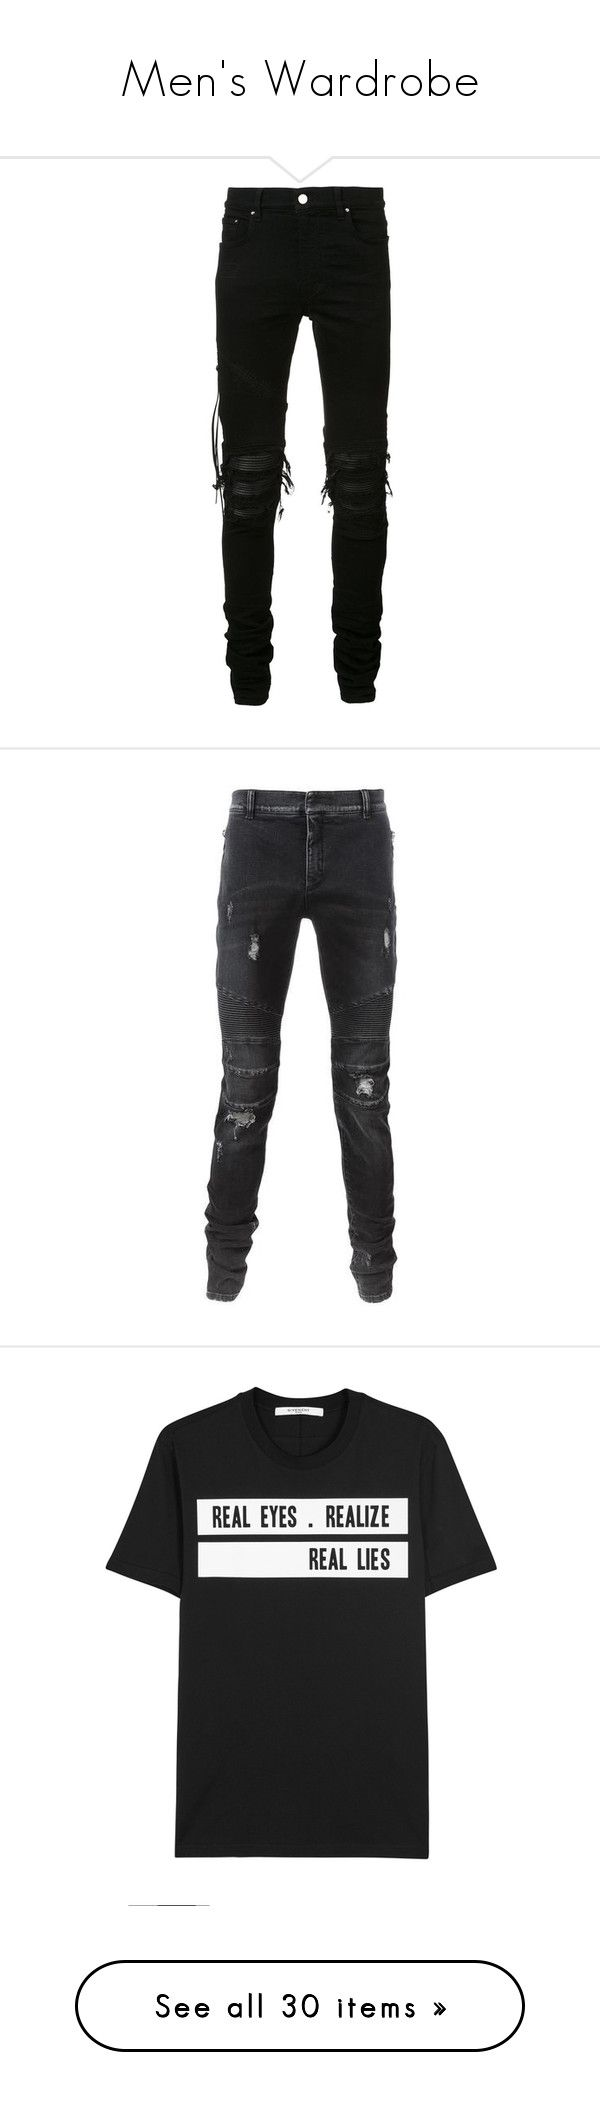 """""""Men's Wardrobe"""" by americanreject ❤ liked on Polyvore featuring men's fashion, men's clothing, men's jeans, pants, jeans, men, black, bottoms, mens slim fit ripped jeans and mens destroyed jeans"""